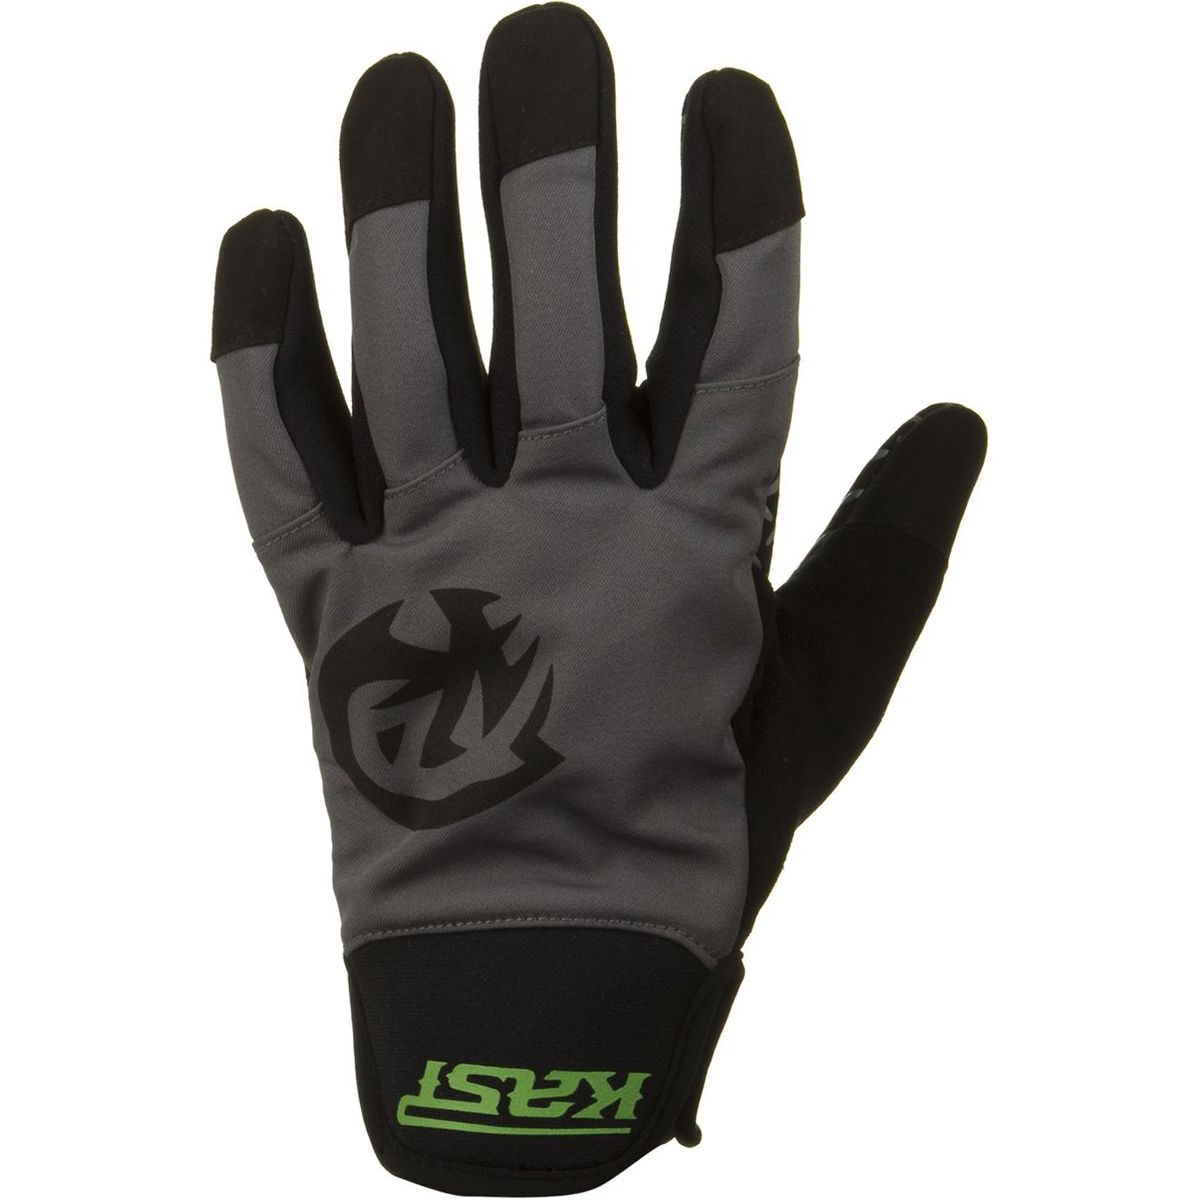 Kast Gear Raptor Glove Slate Grey Black L